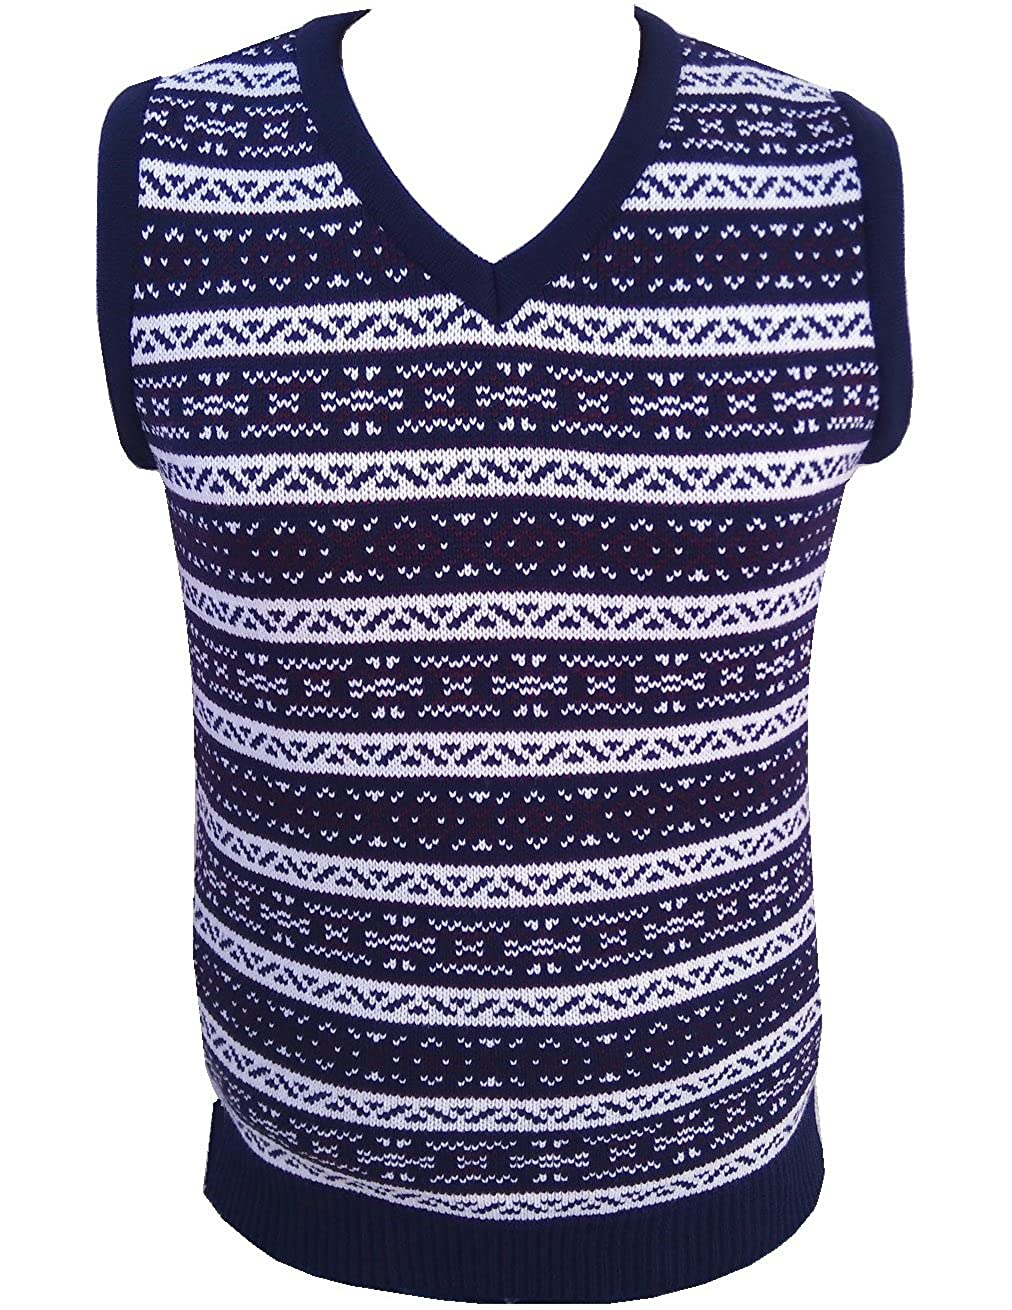 1930s Dresses, Shoes, Lingerie, Clothing UK London Knitwear Gallery Aztec Retro Vintage Knitwear Tanktop Sleeveless Golf Sweater £18.99 AT vintagedancer.com